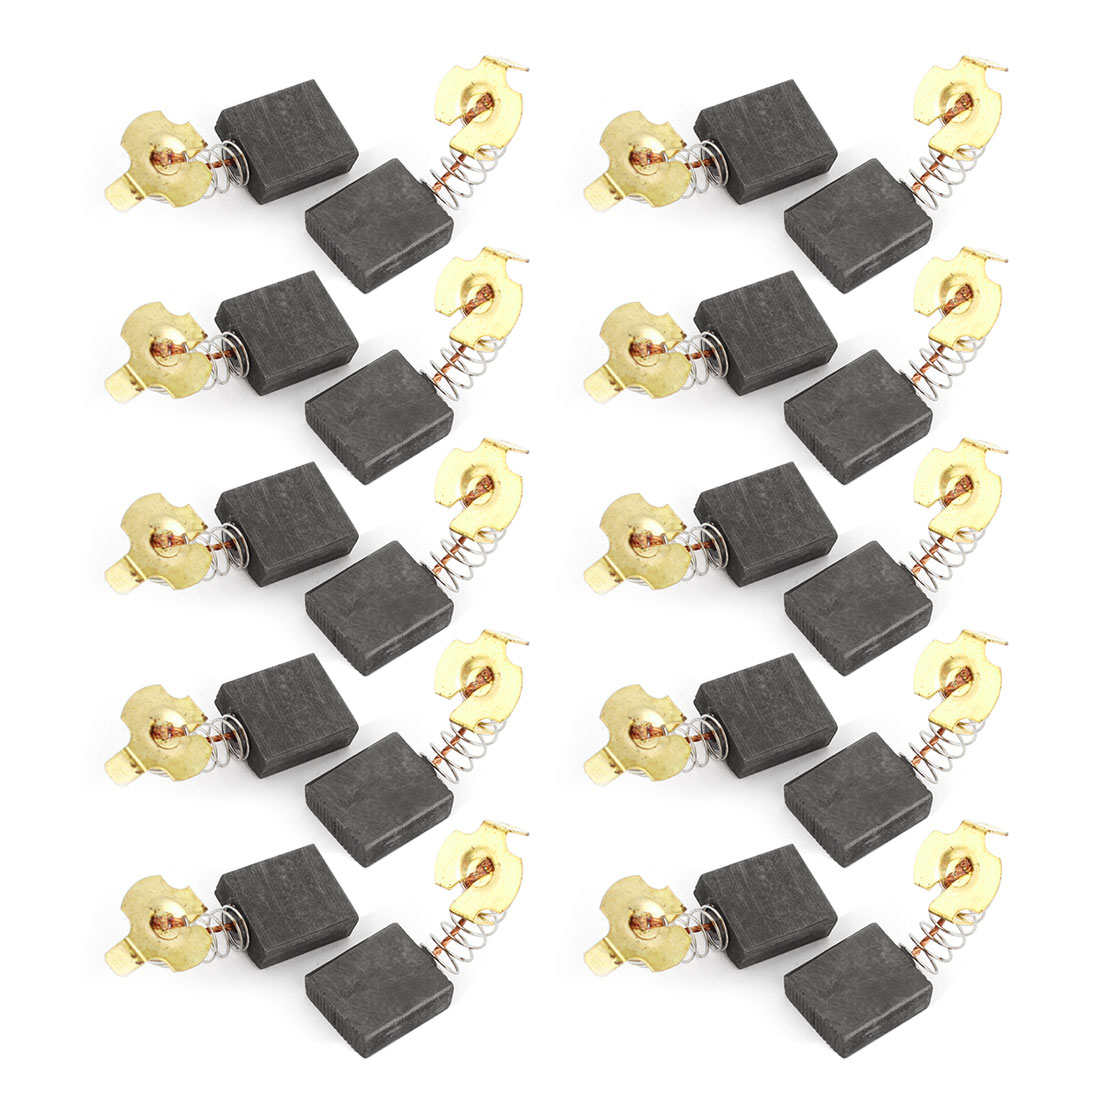 20 Pcs Spare Part Spring Type Electric Drill Motor 19mm x 16mm x 7mm Carbon Brushes